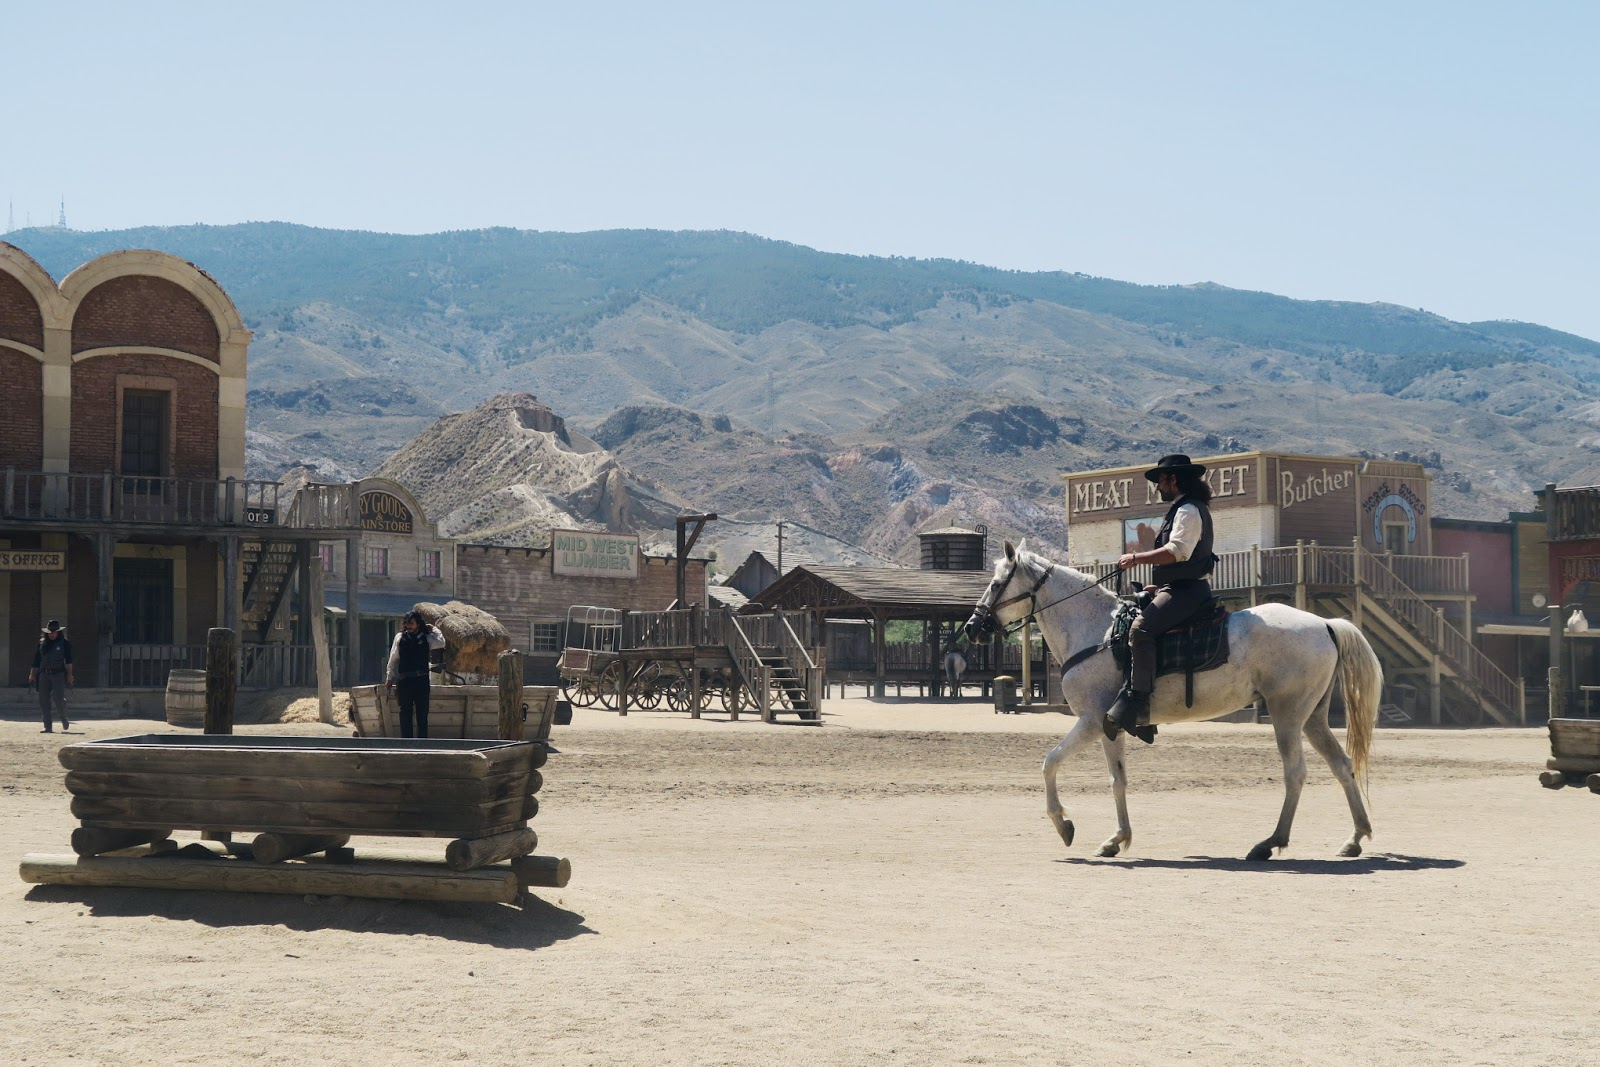 The wild west show at Mini Hollywood near Almeria